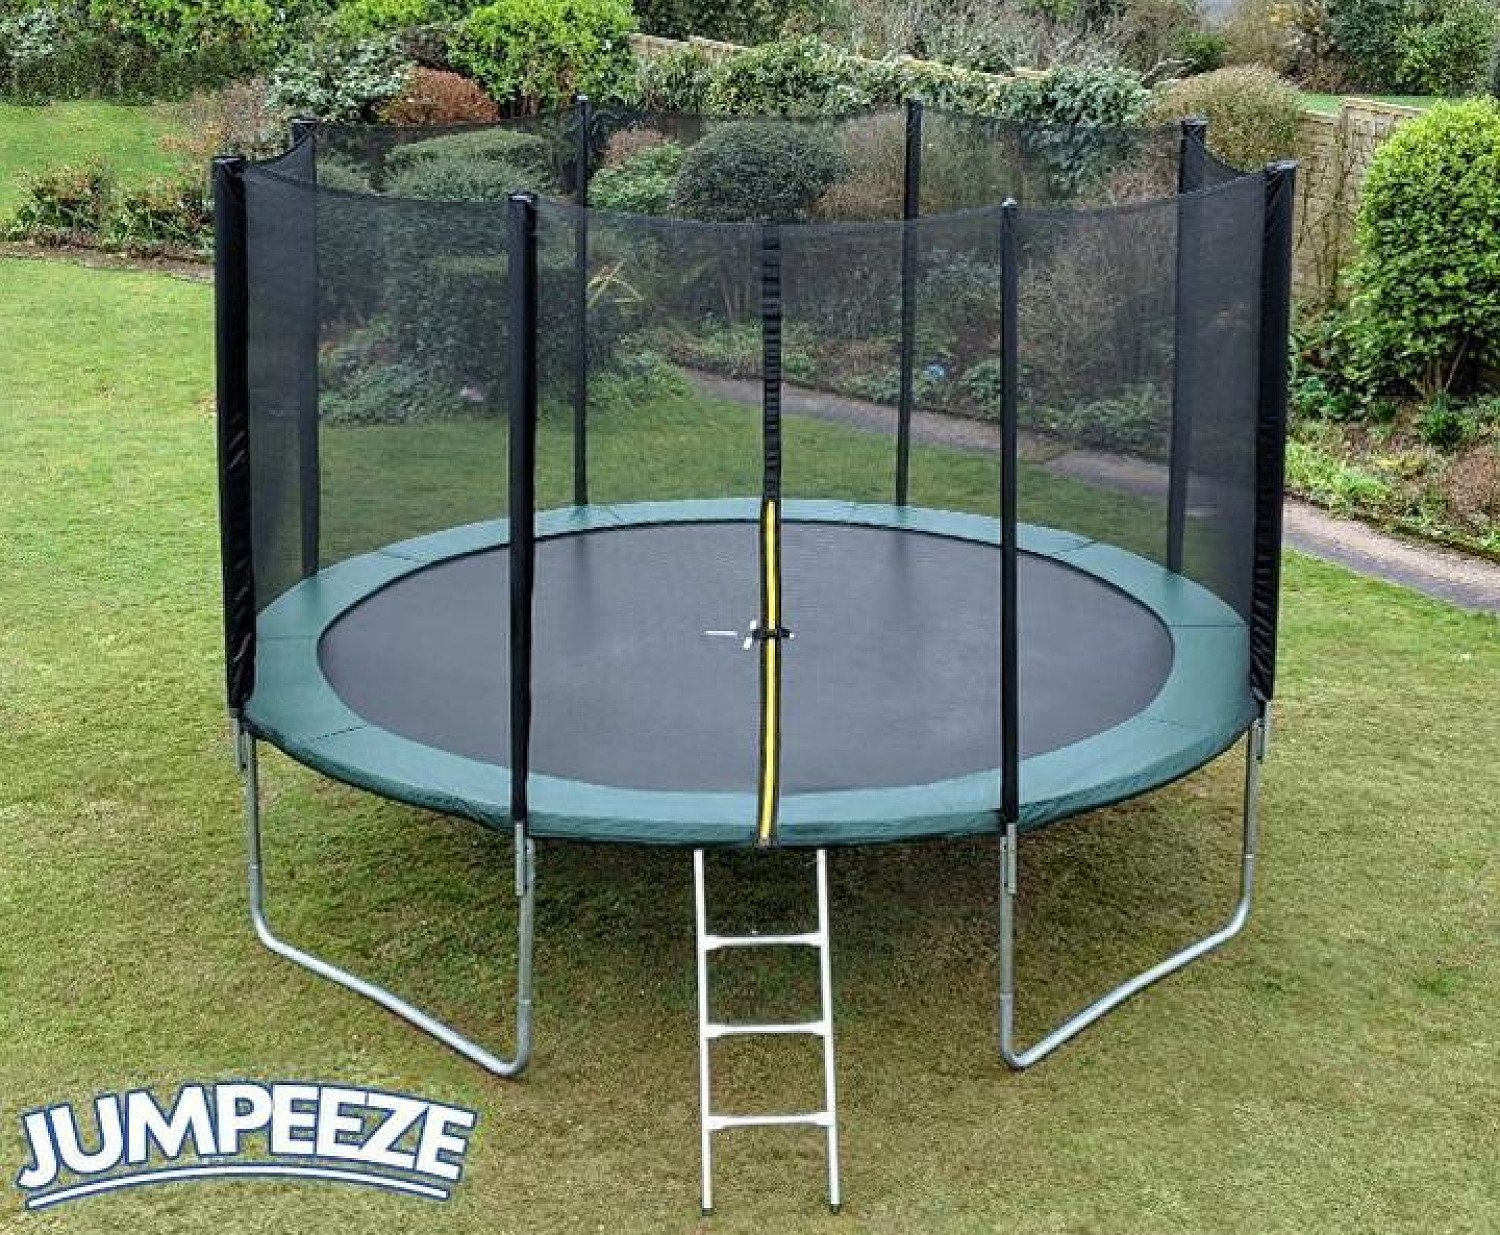 Jumpeeze Green 12ft trampoline package Free Postage